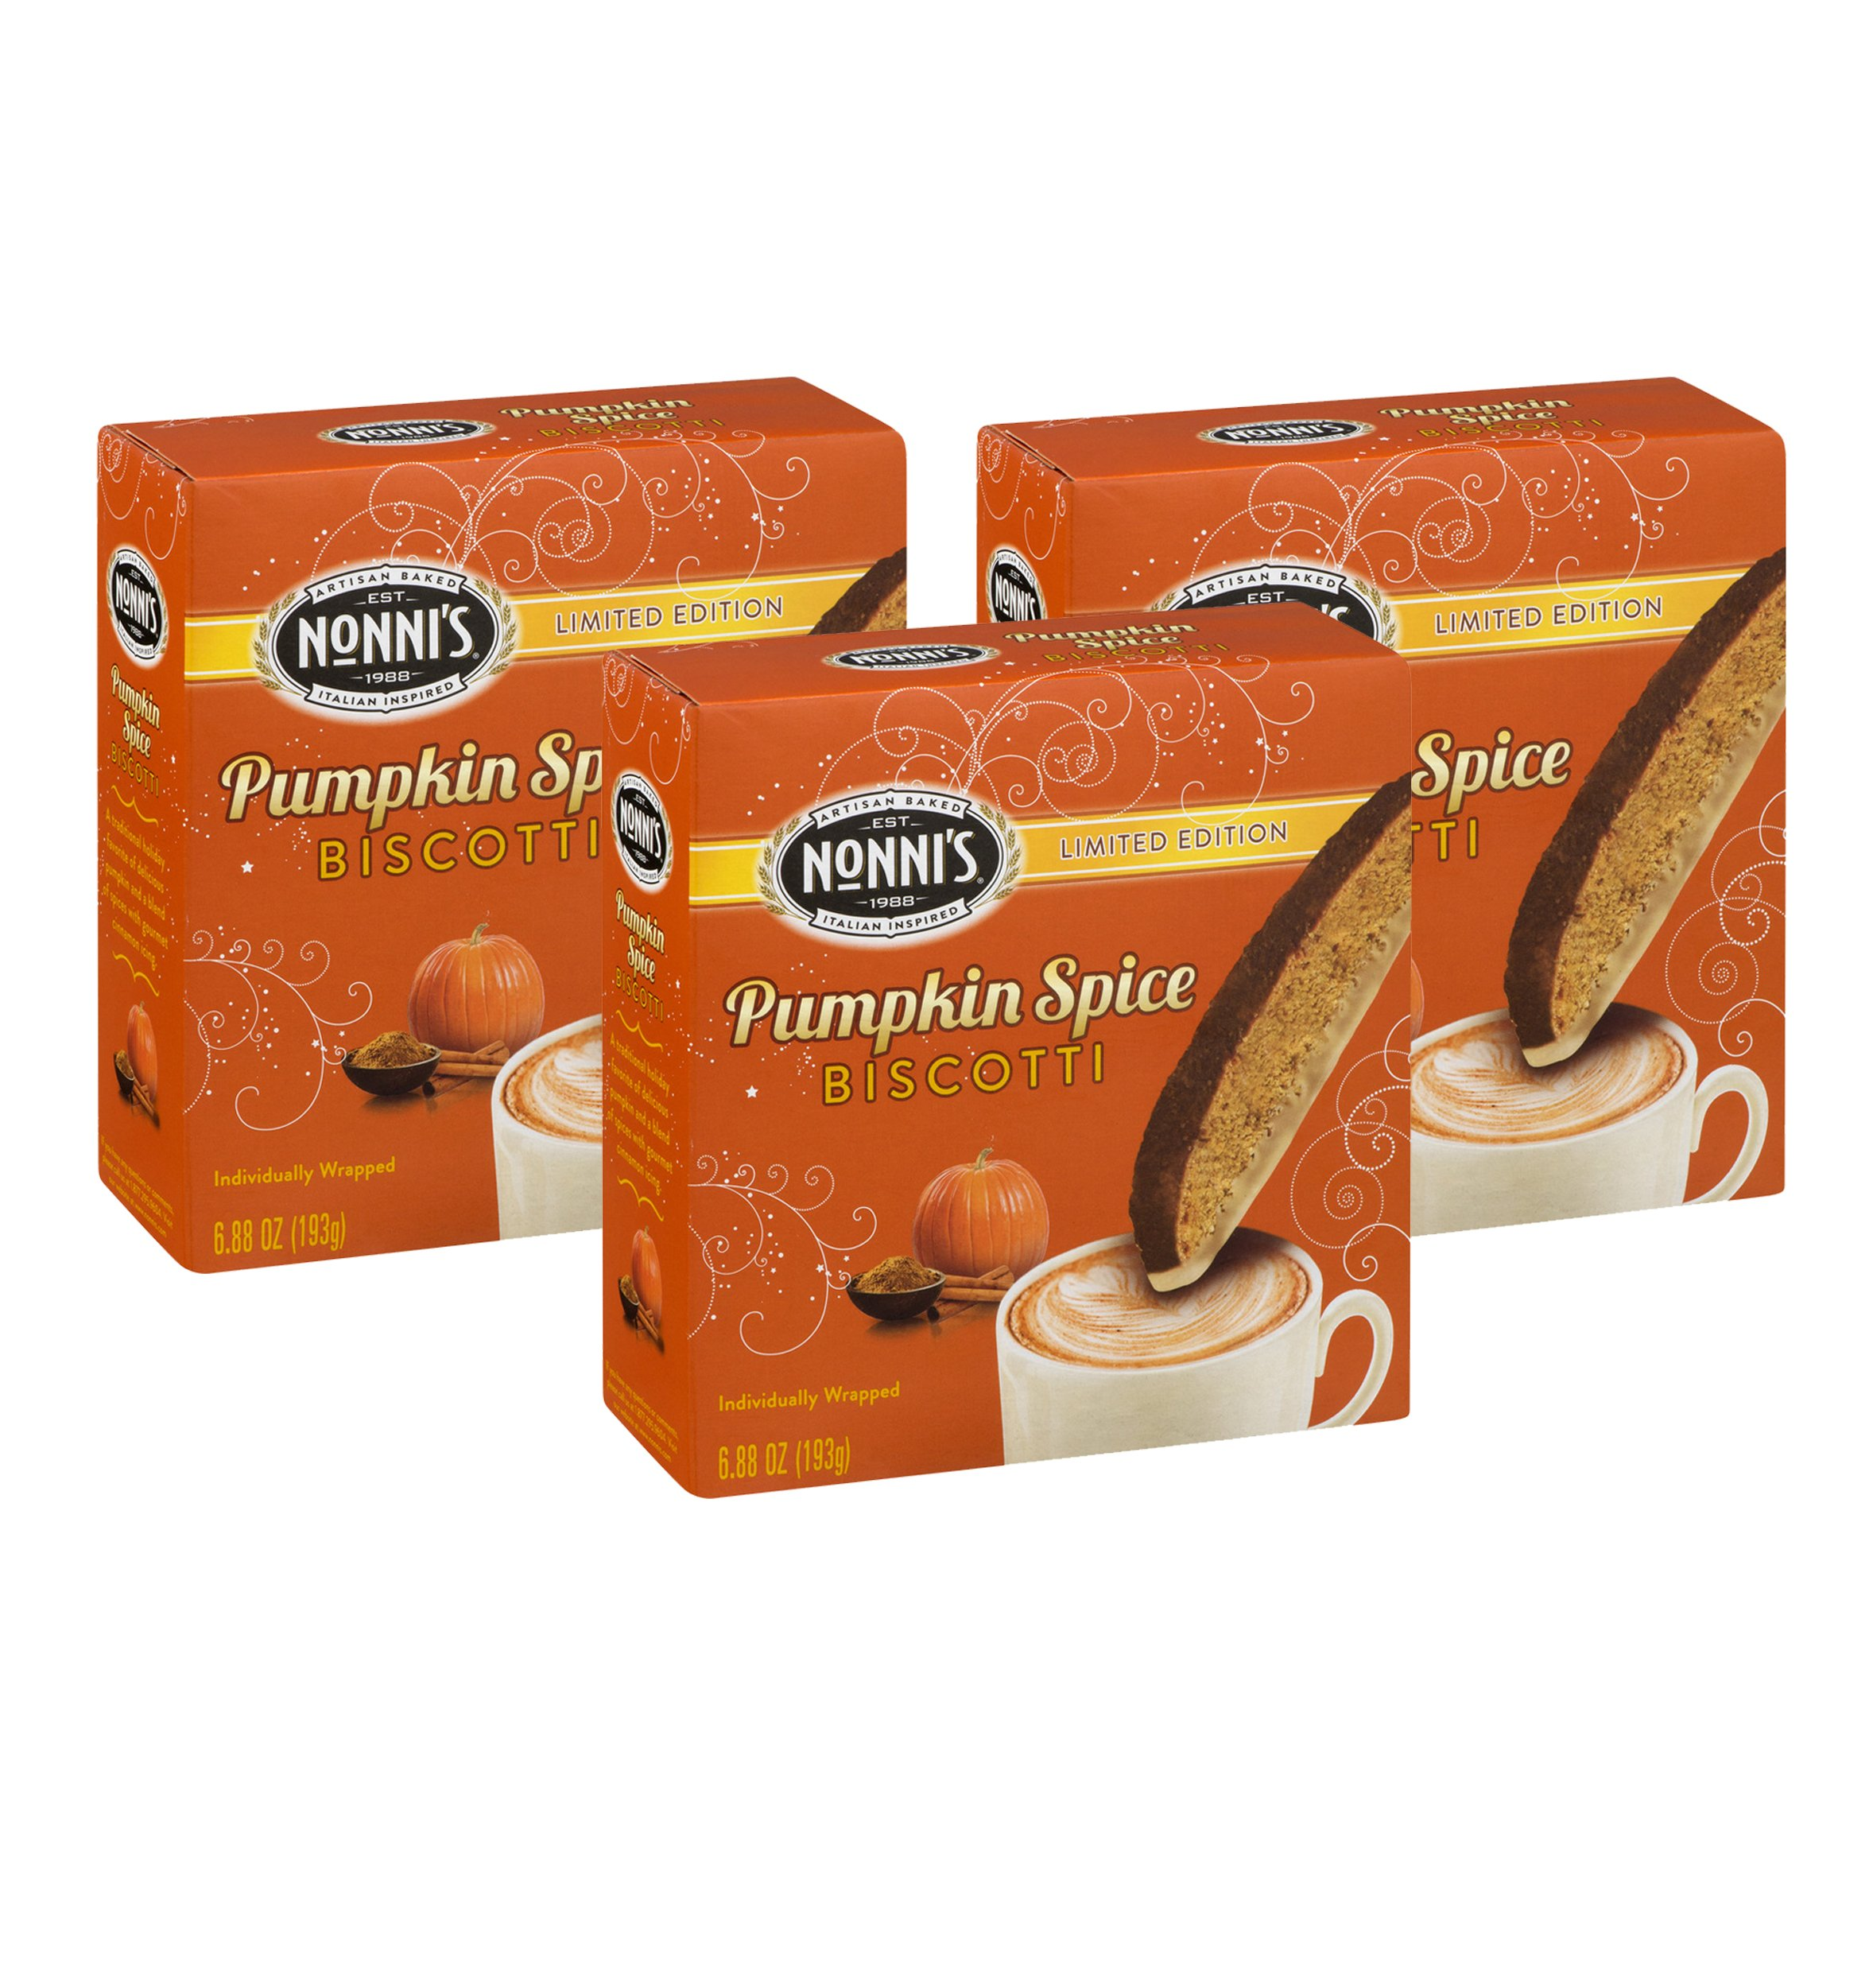 Nonnis Pumpkin Spice Biscotti Limited Edition Individually Wrapped 6.88 Oz. (Pack of 3) by Nonni's